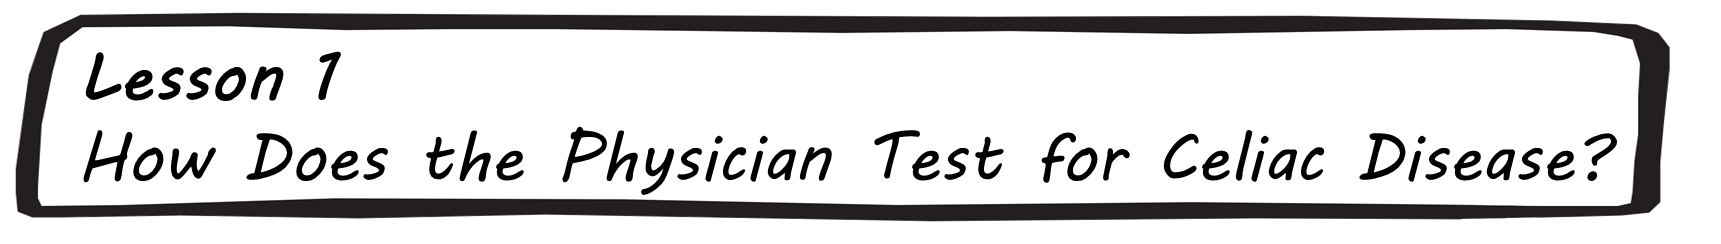 Lesson 1 - How Does the Physician Test for Celiac Disease?